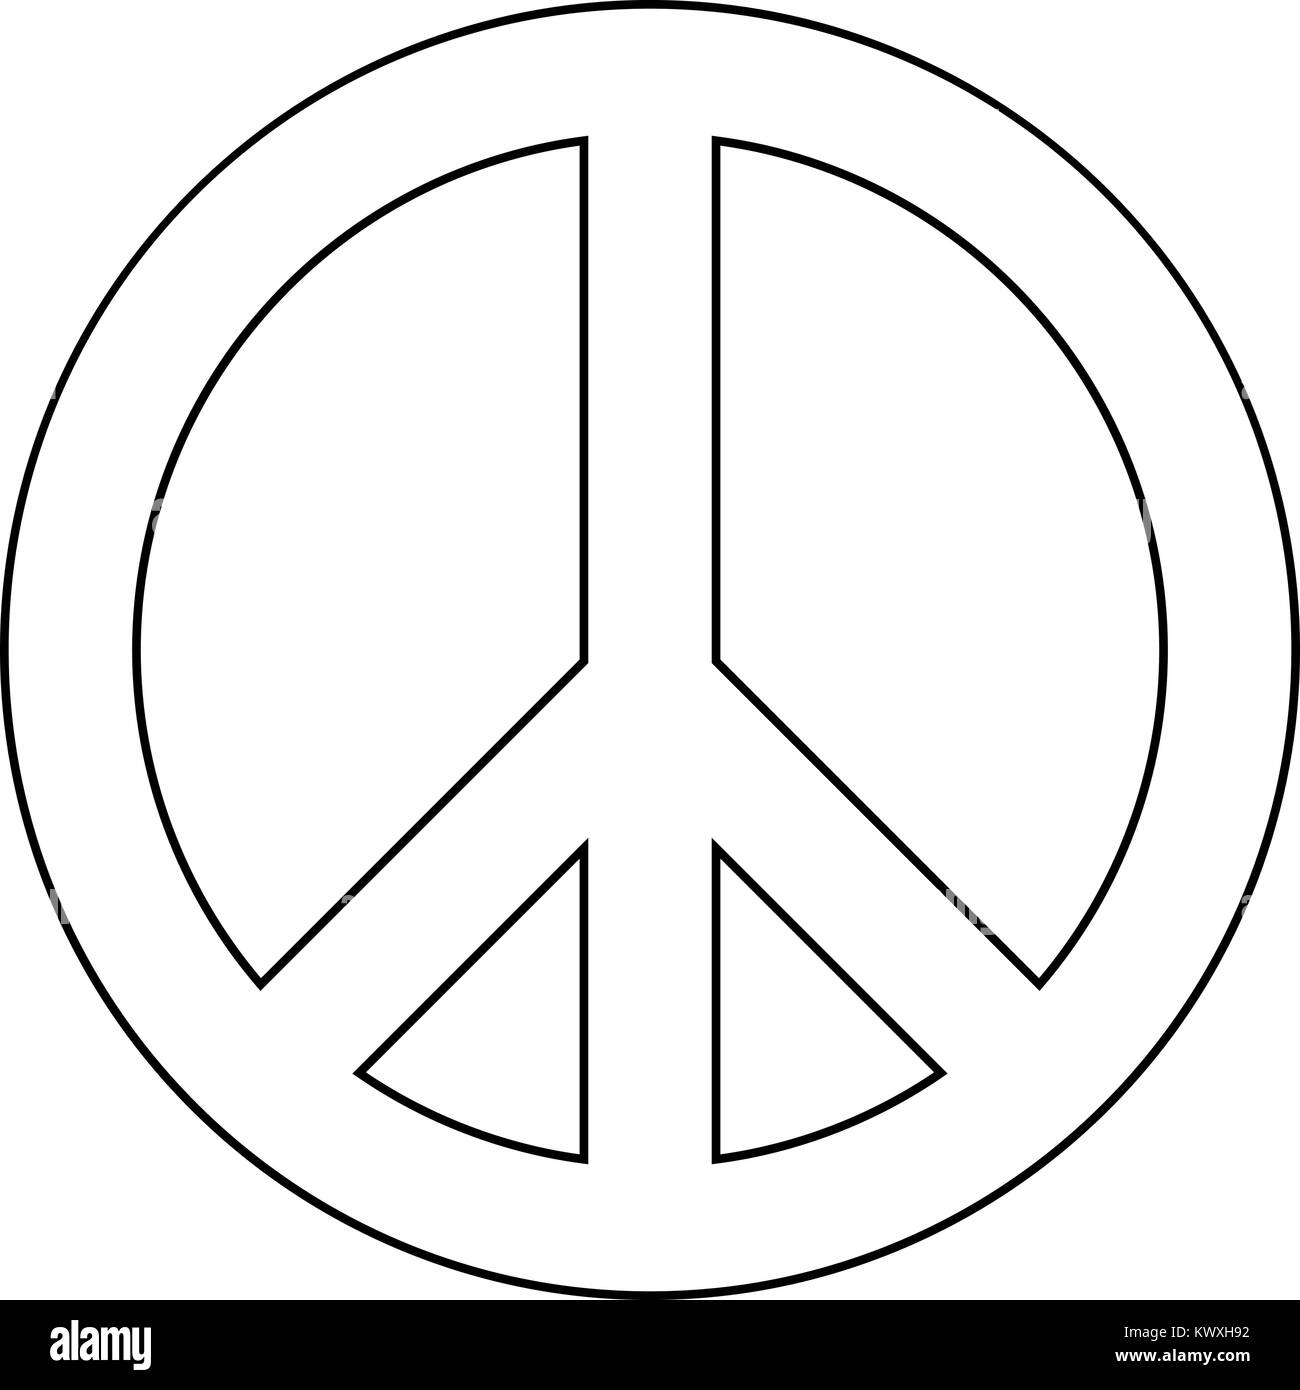 Peace sign stock vector images alamy world peace sign symbol icon black color flat illustration stock vector biocorpaavc Choice Image